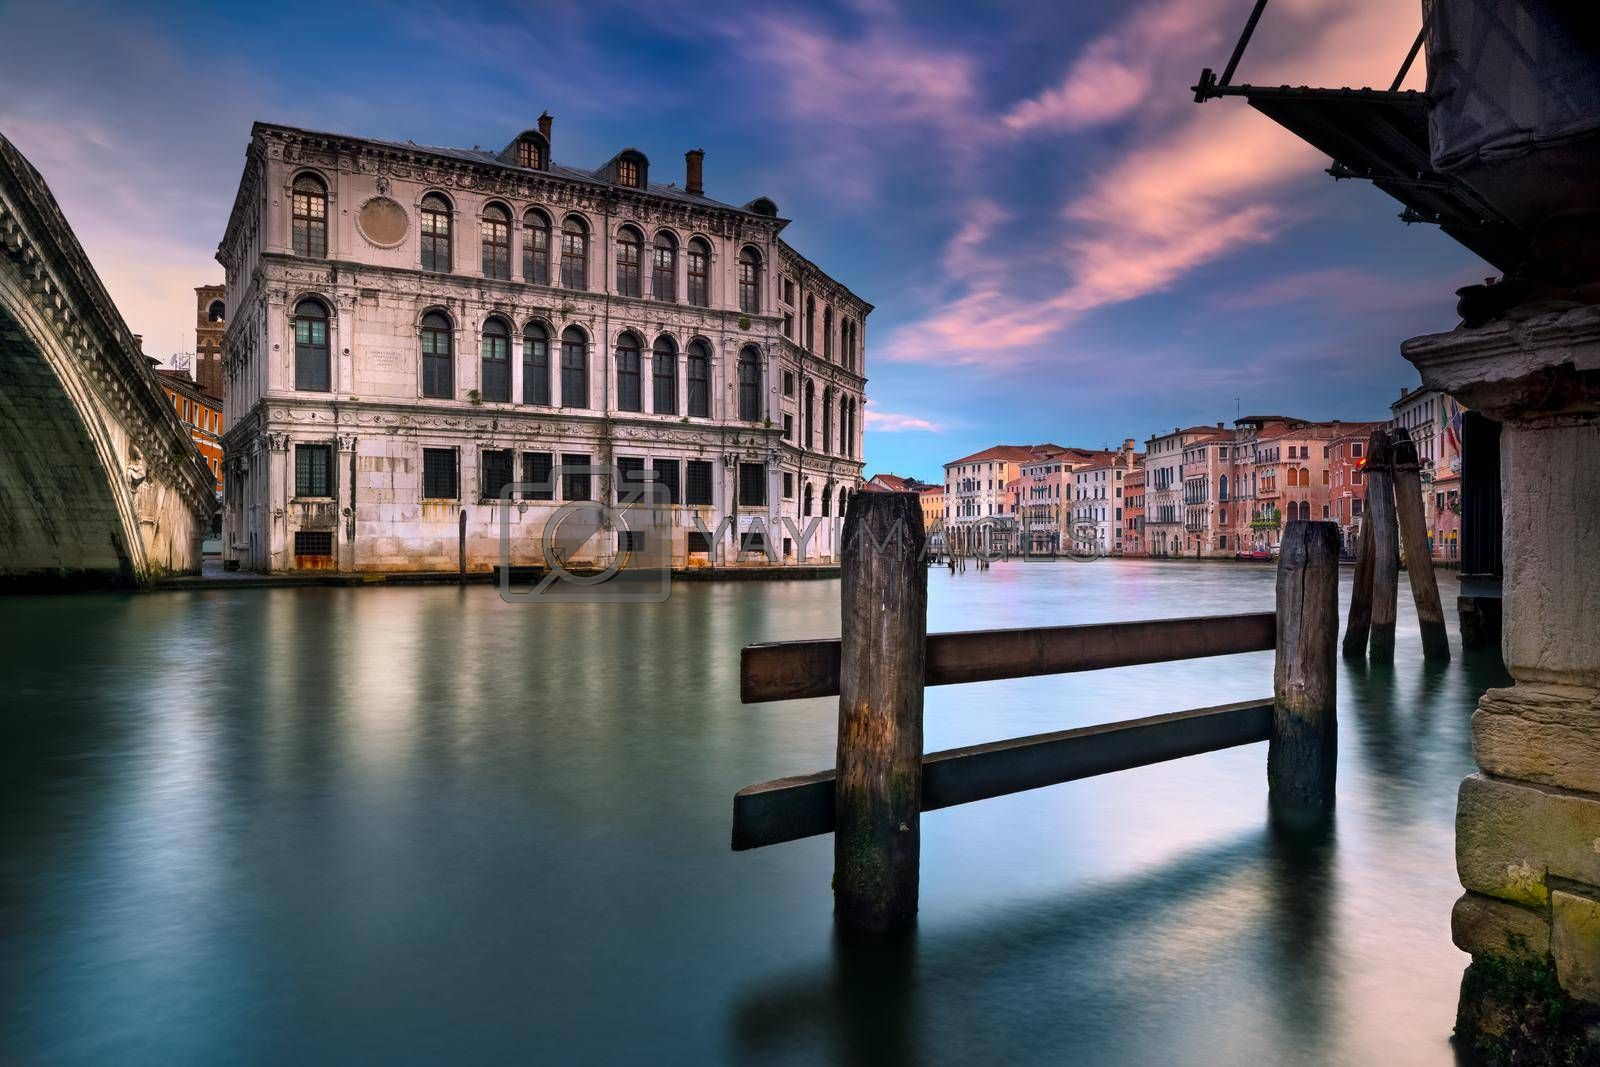 Beautiful Landscape of an Amazing Venetian Architecture. Gorgeous Vintage Buildings Standing in the Canal. Romantic Vacation to Venice. Italy. Europe.